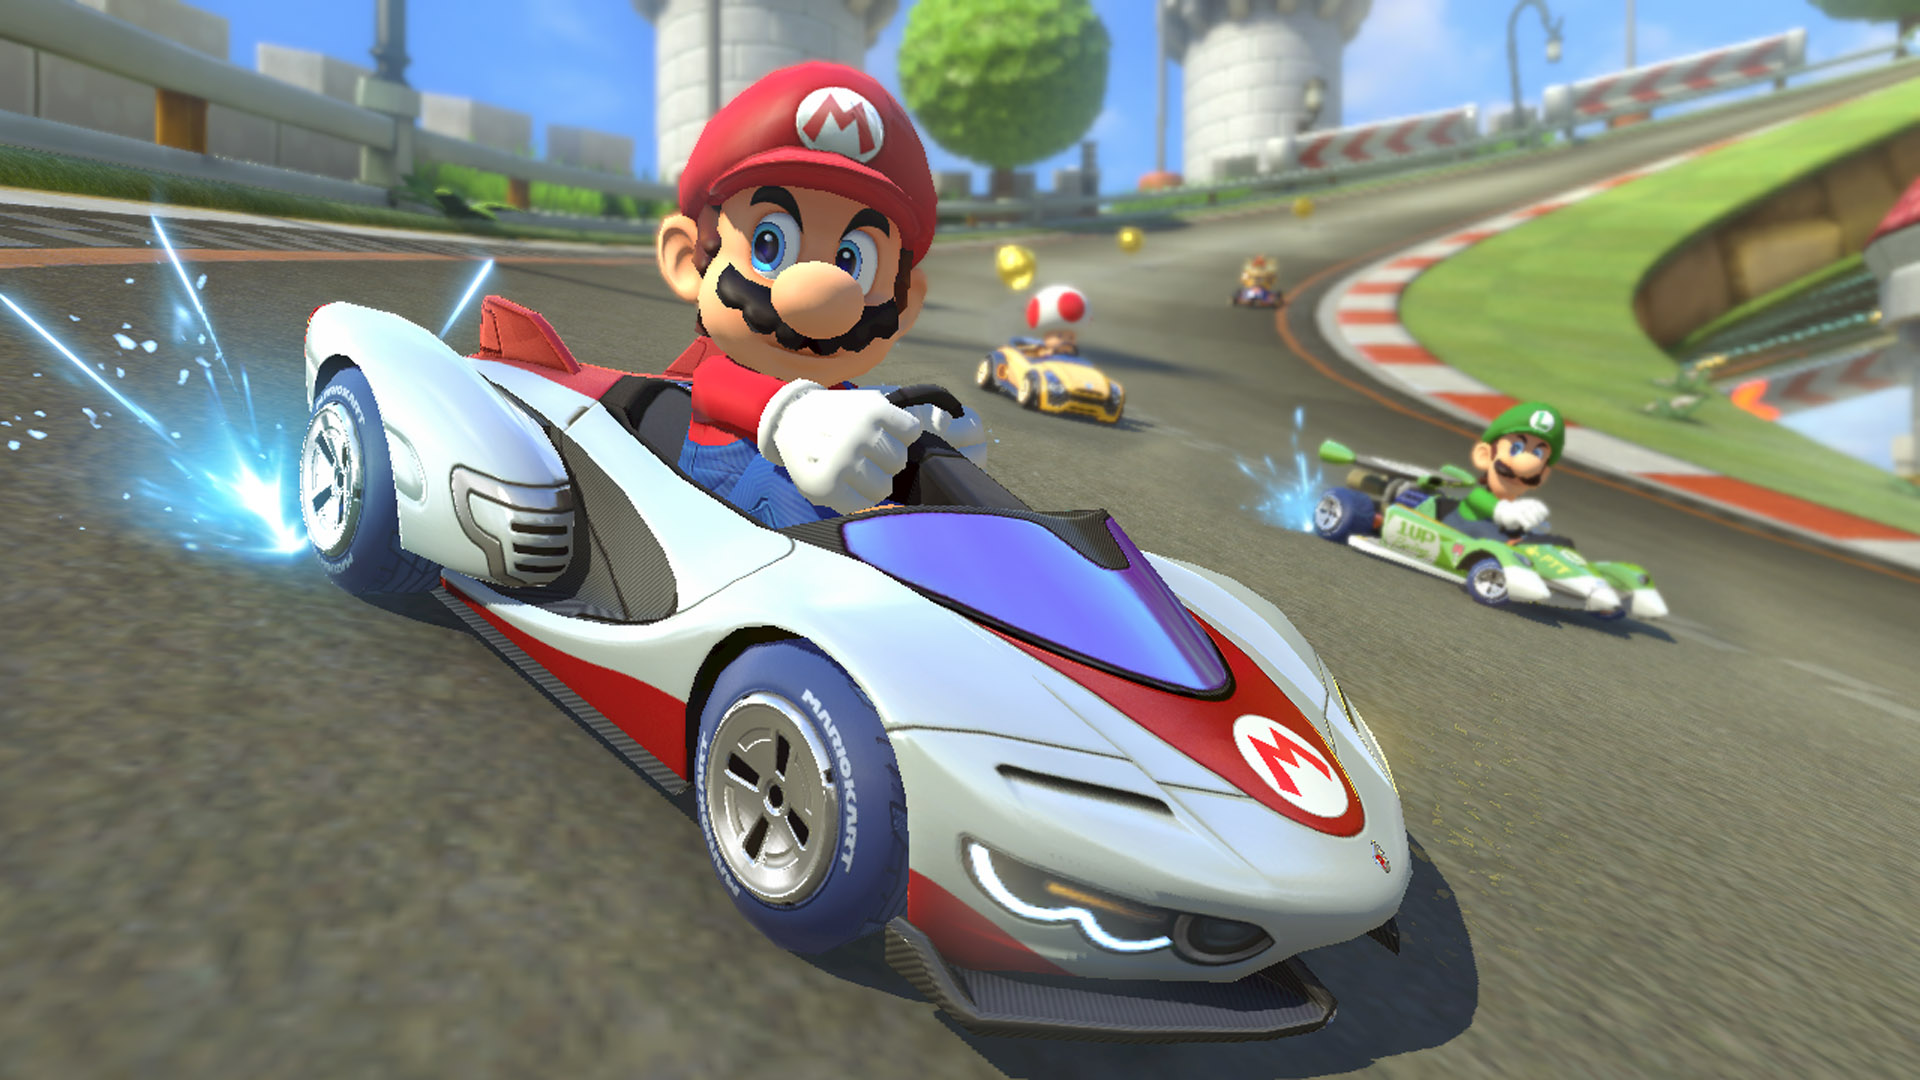 mario kart 8 dlc pack 2 and 200cc mode update now available to download wii u news from vooks. Black Bedroom Furniture Sets. Home Design Ideas